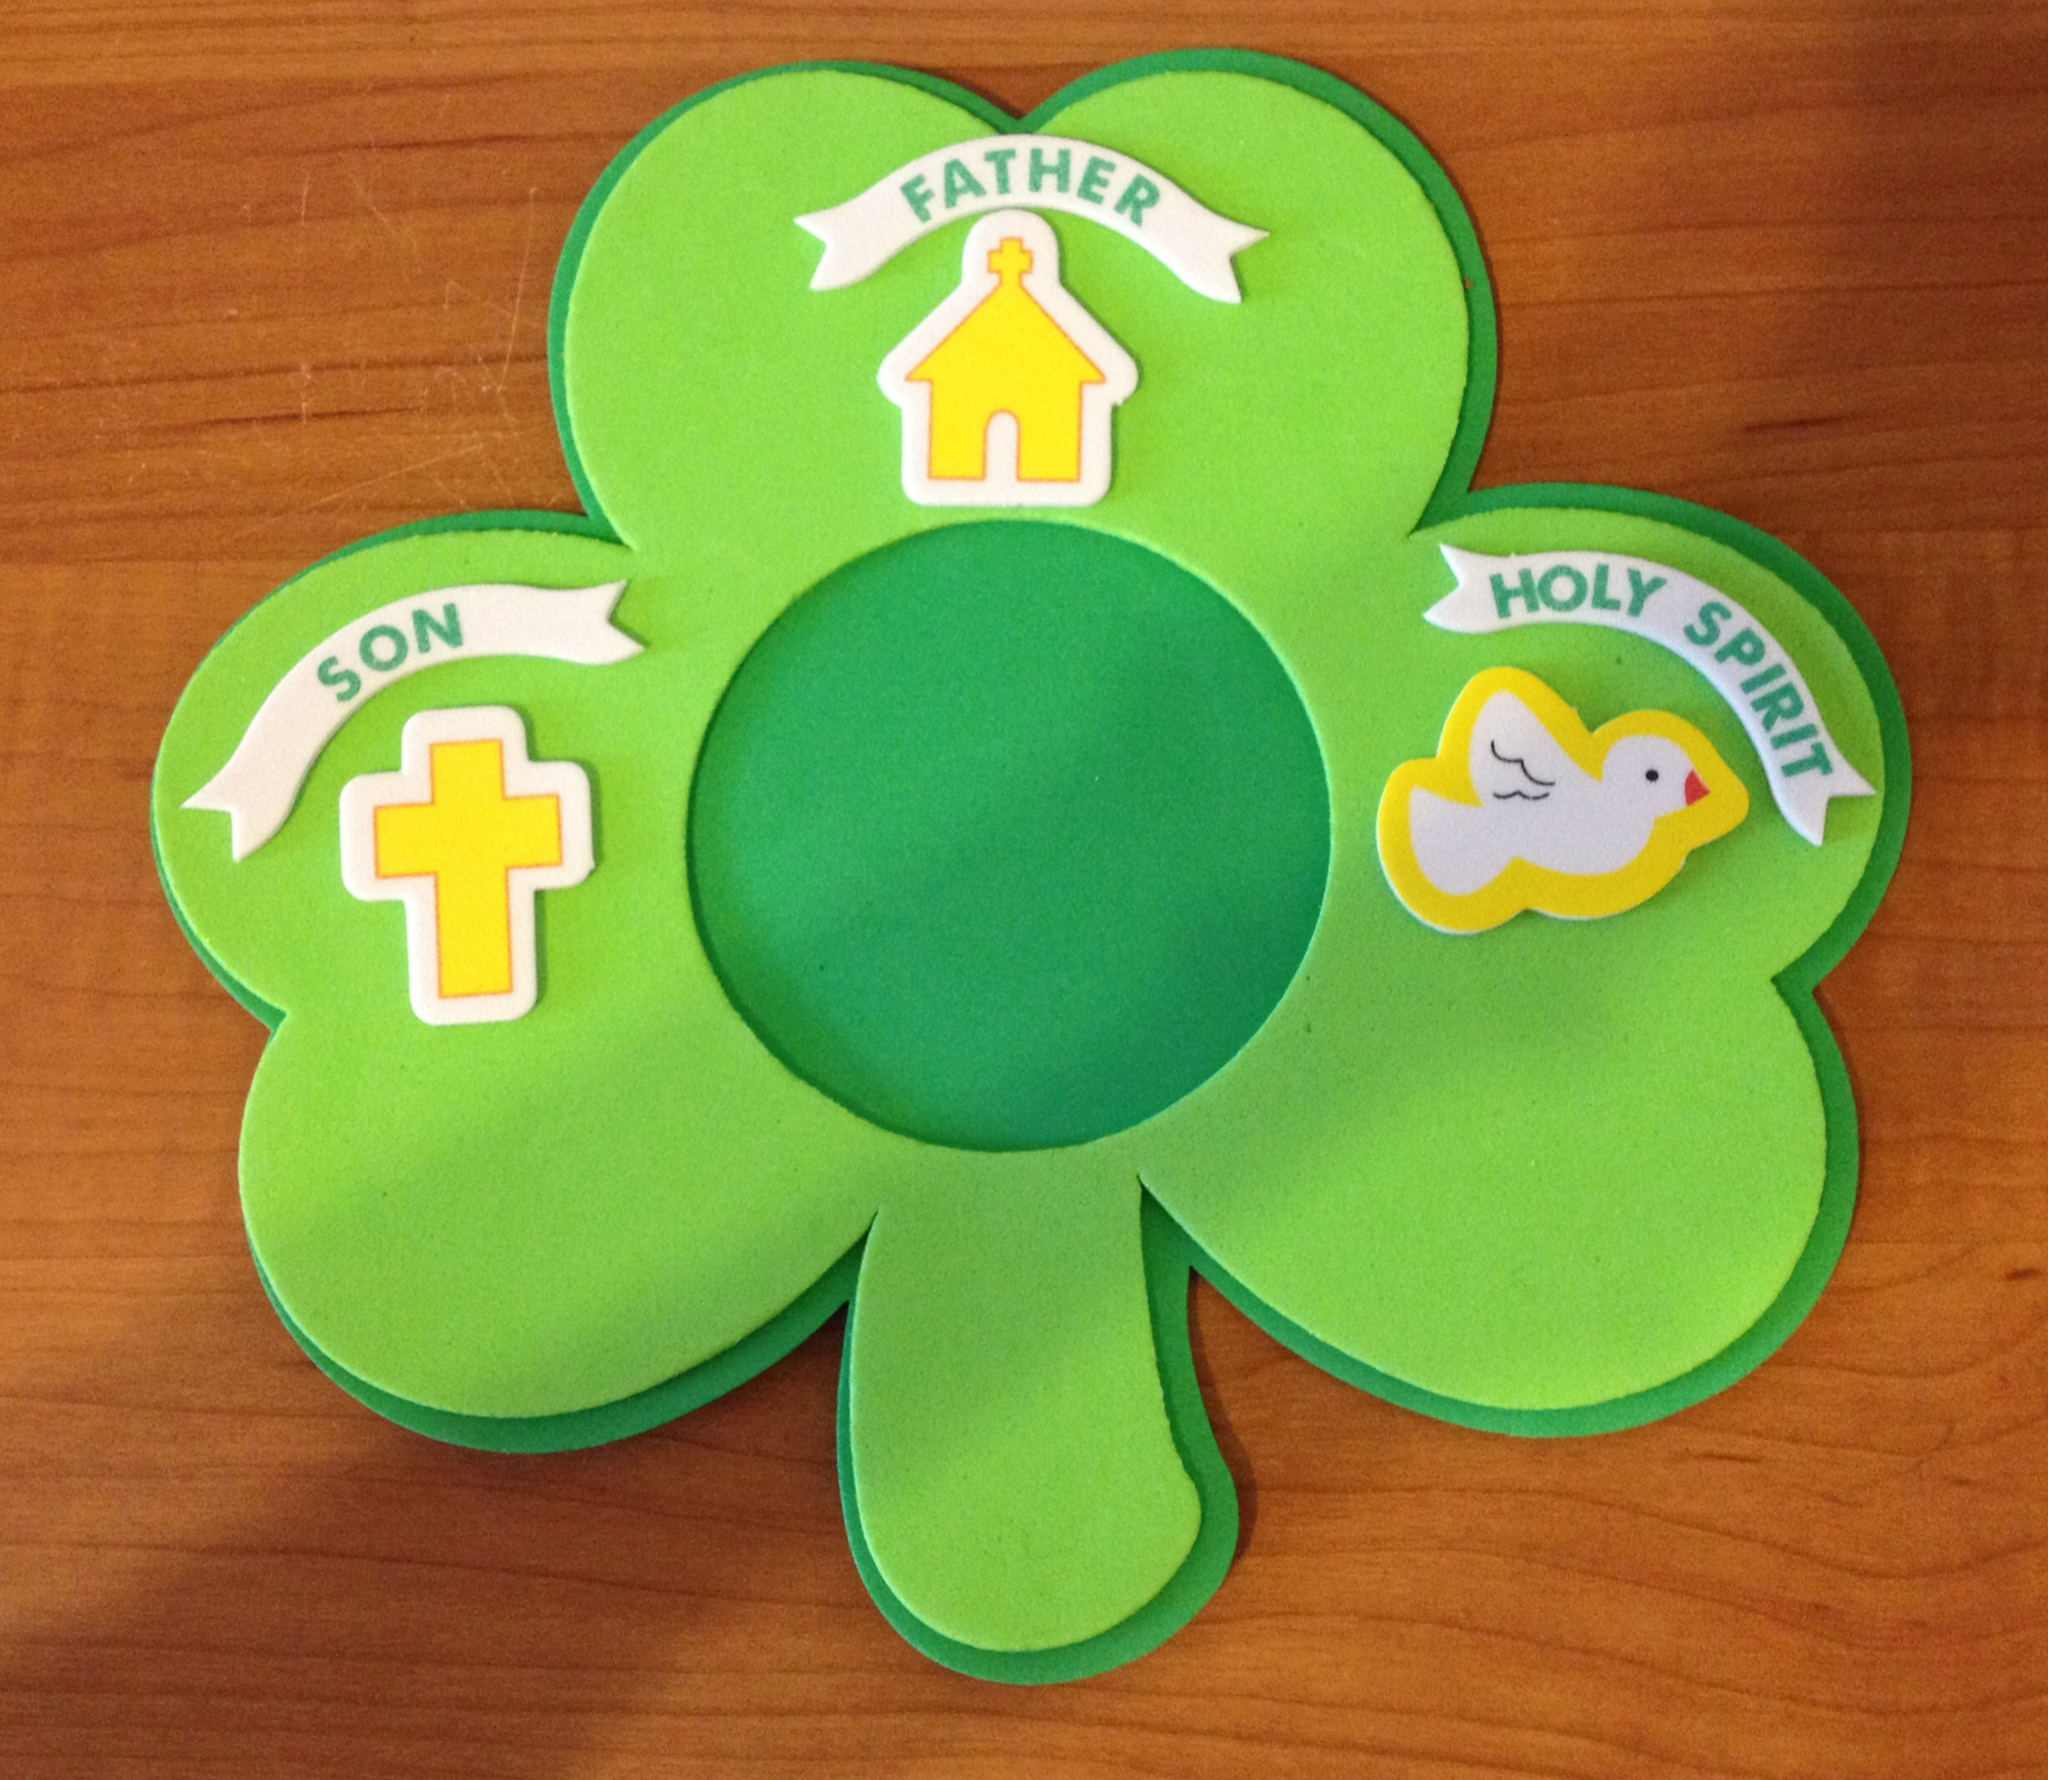 The Shamrock: A Symbol of the Trinity | Religious ...